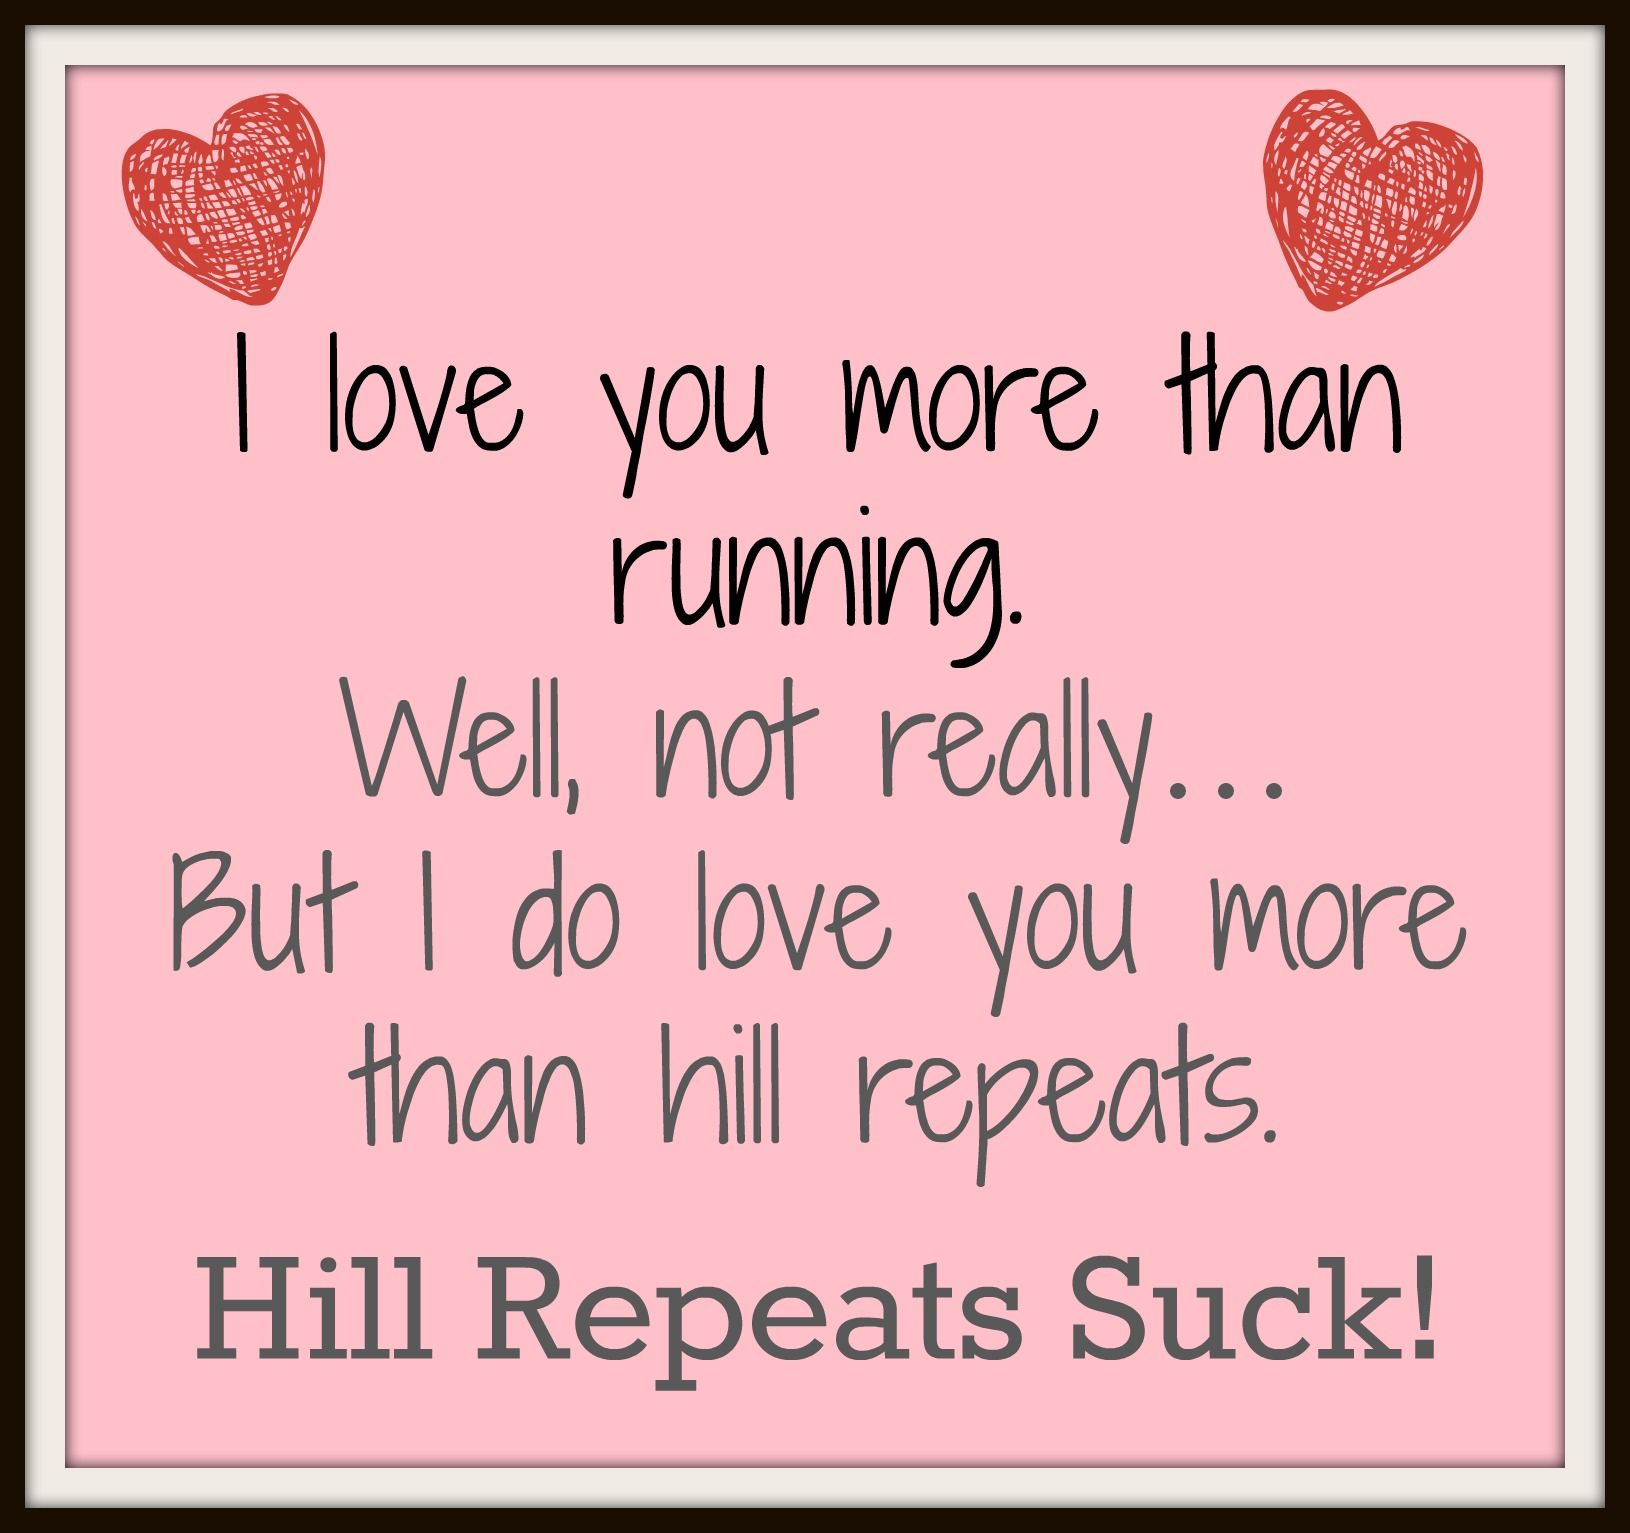 Pin By Ken Compton On Run Like You Stole Something Inspirational Running Quotes I Do Love You Love You More Than